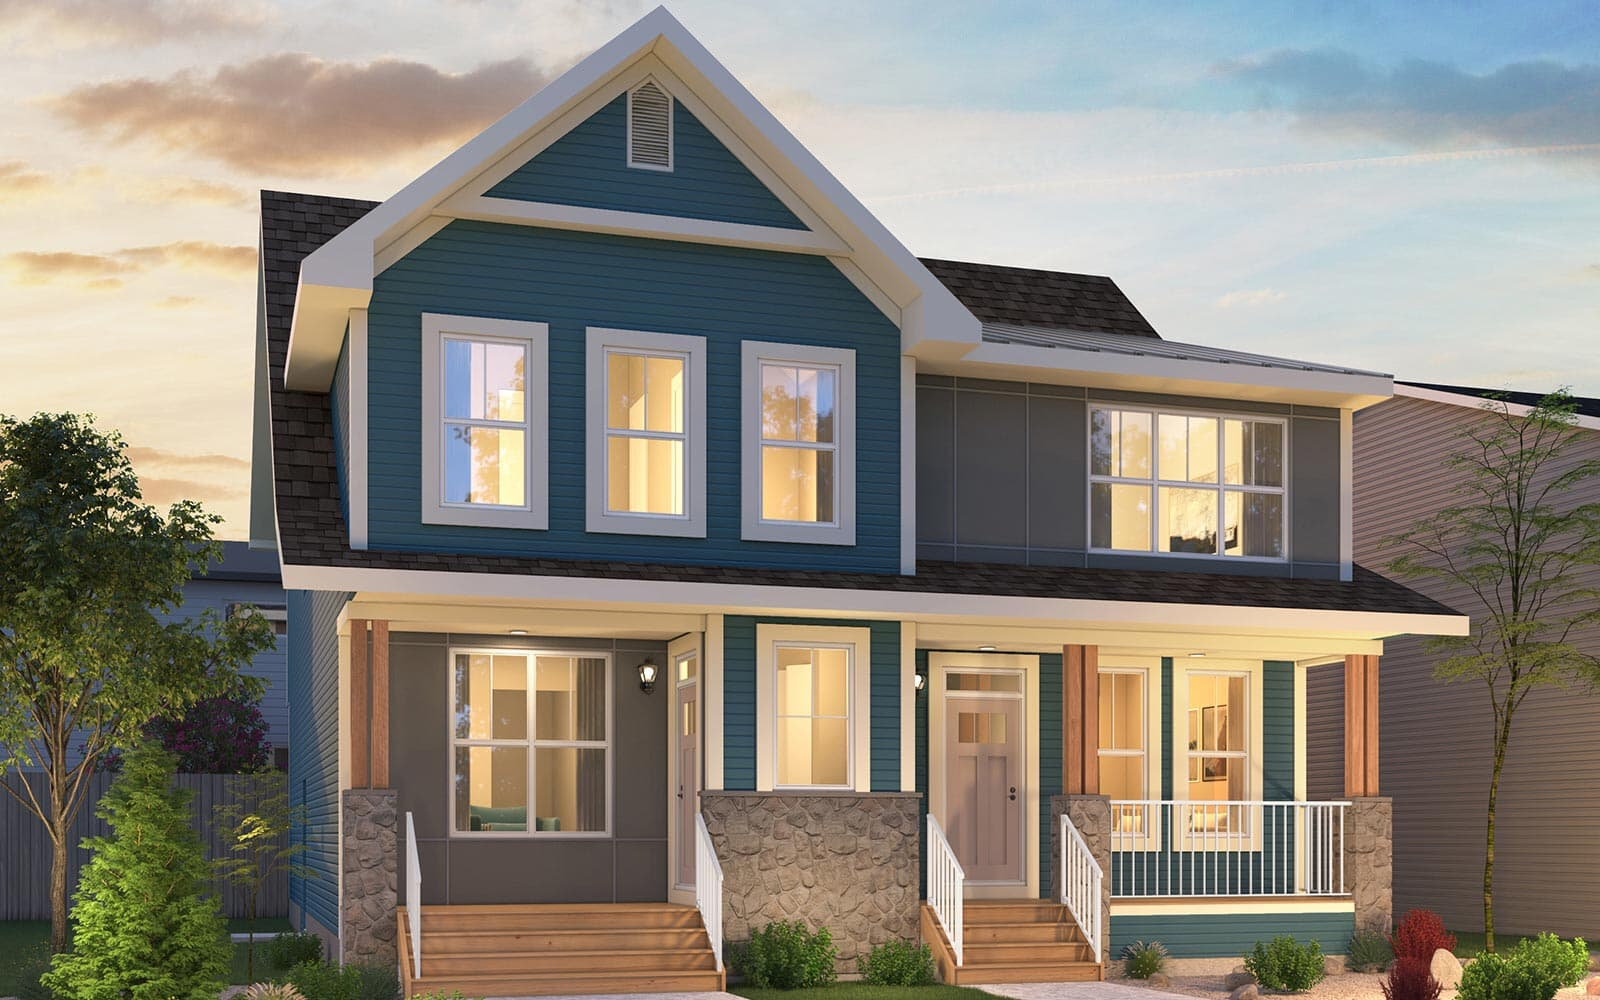 Rendering of duplex homes exterior at Chinook Gate in Airdrie, Alberta by Brookfield Residential